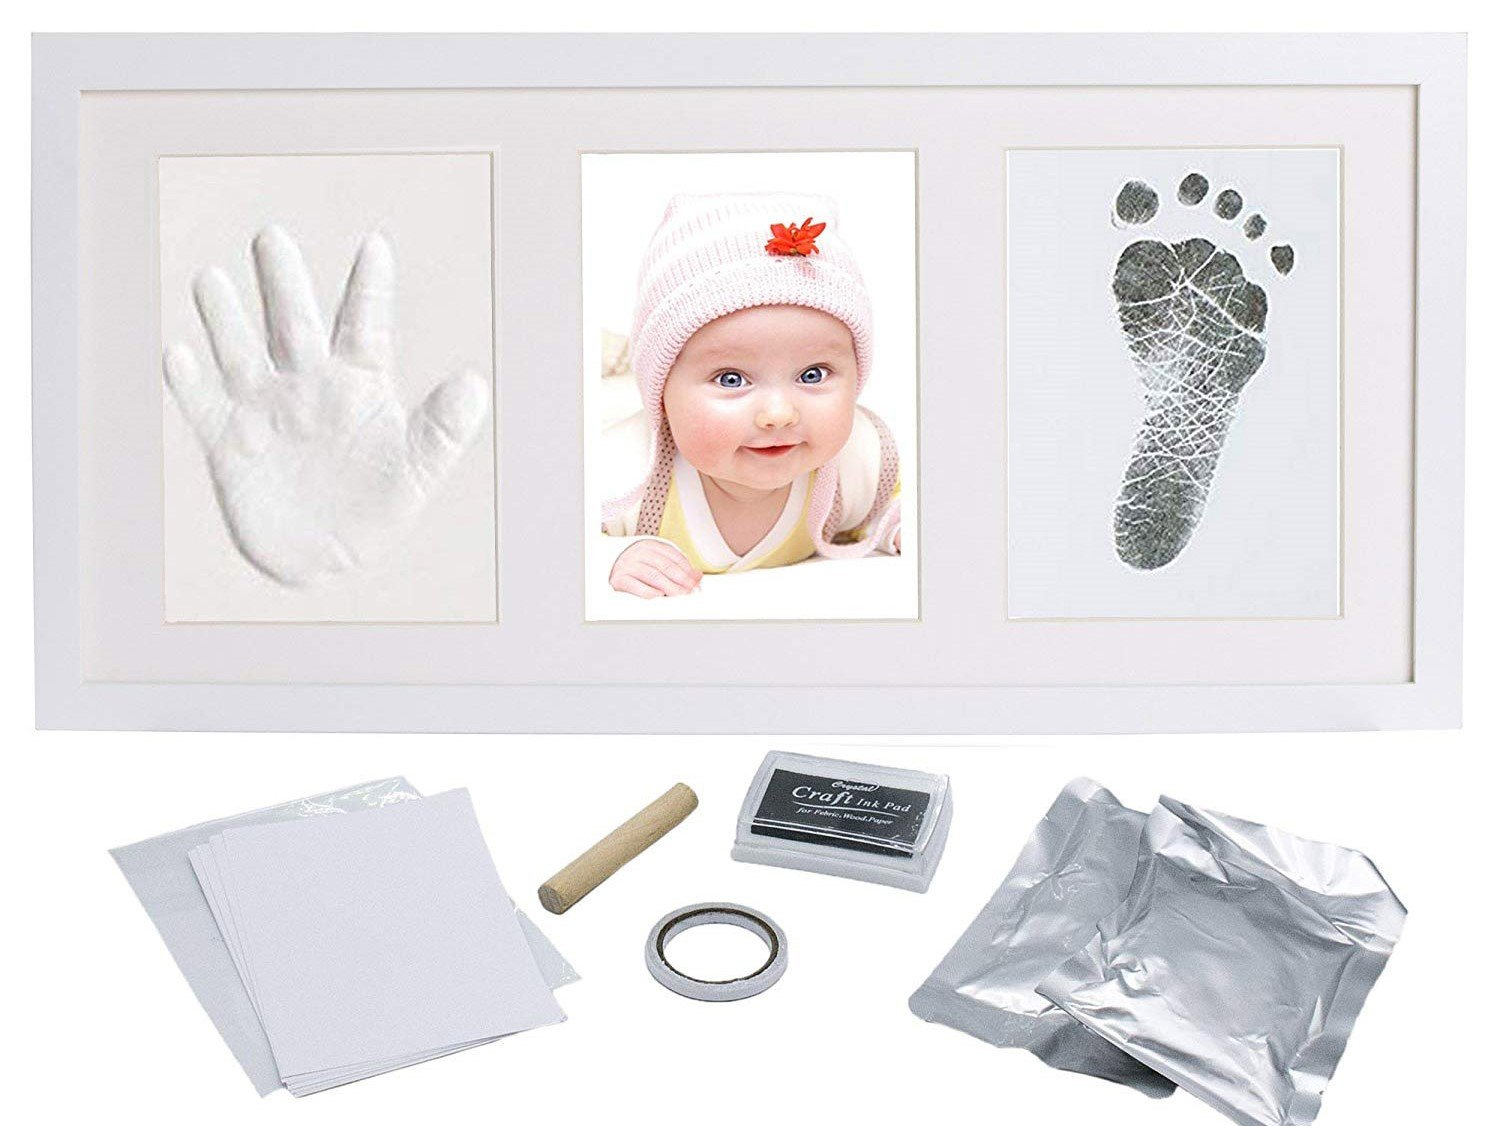 Baby Hand and Foot Print Kit - with Clay and Ink - All That You Need to Create That Perfect Baby Hand Print and Foot Print Memory - Best Babyshower Gift for That Perfect Newborn